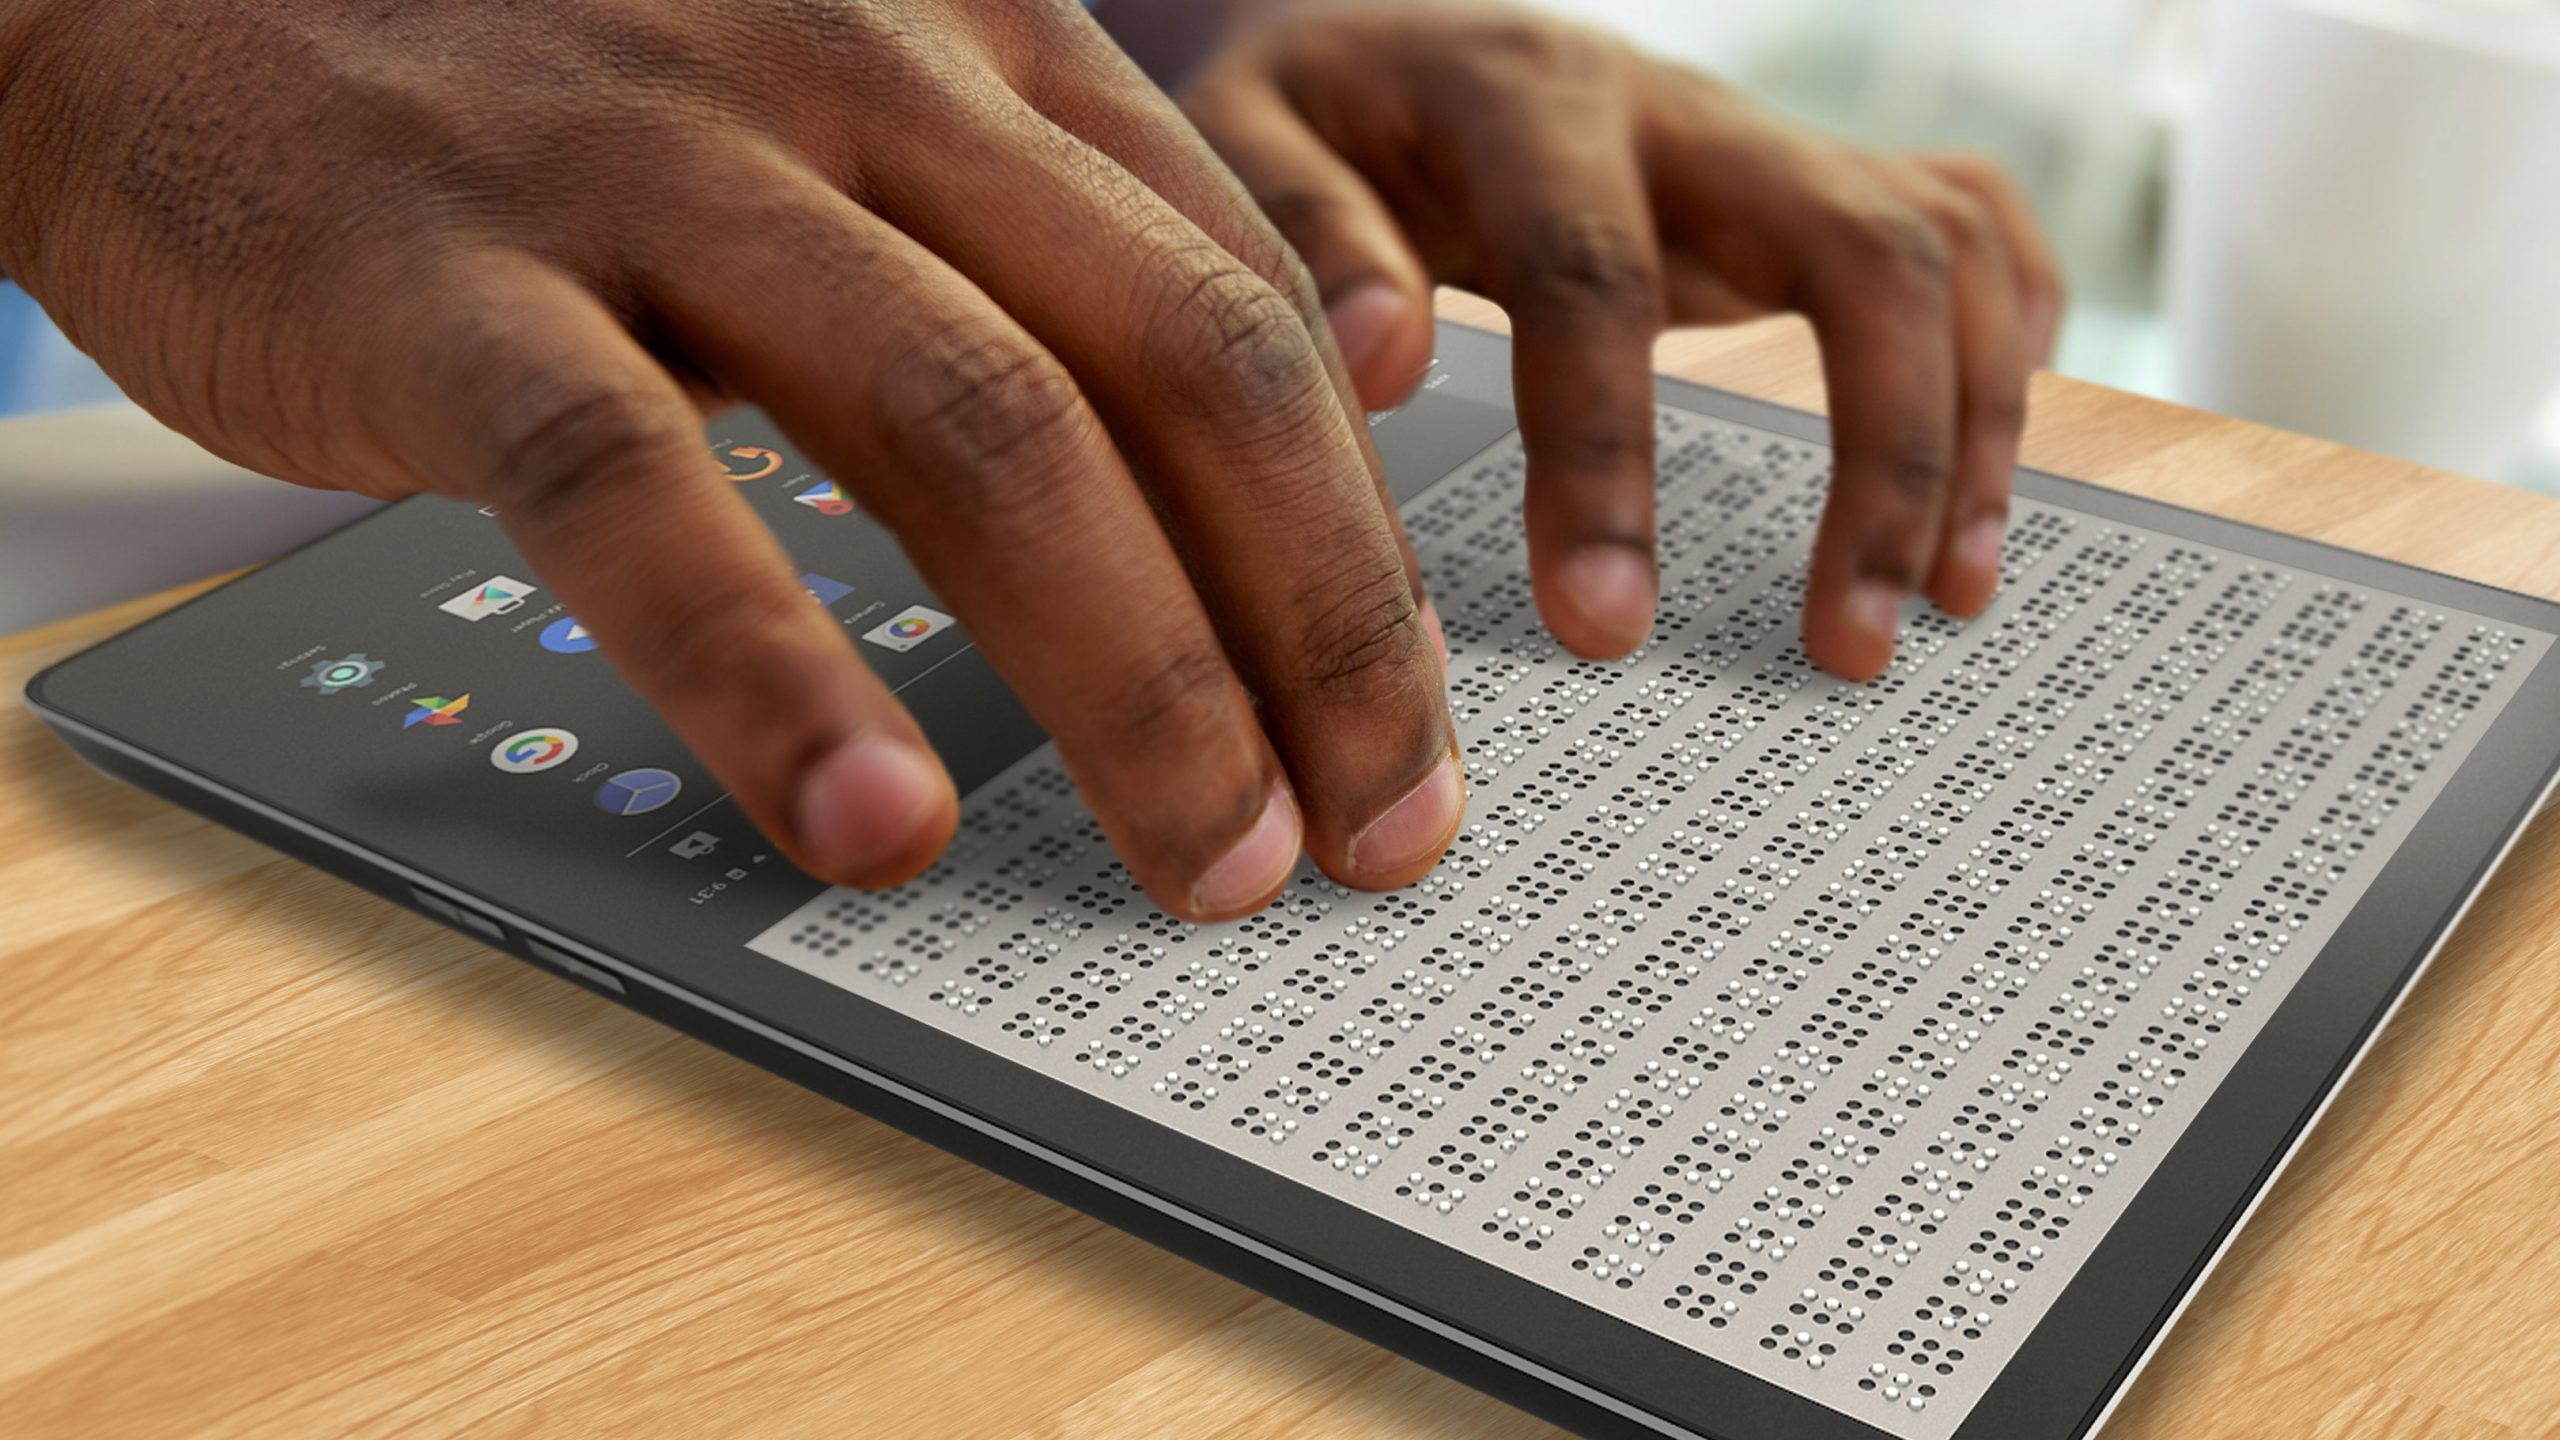 Hands on a technological device with braille